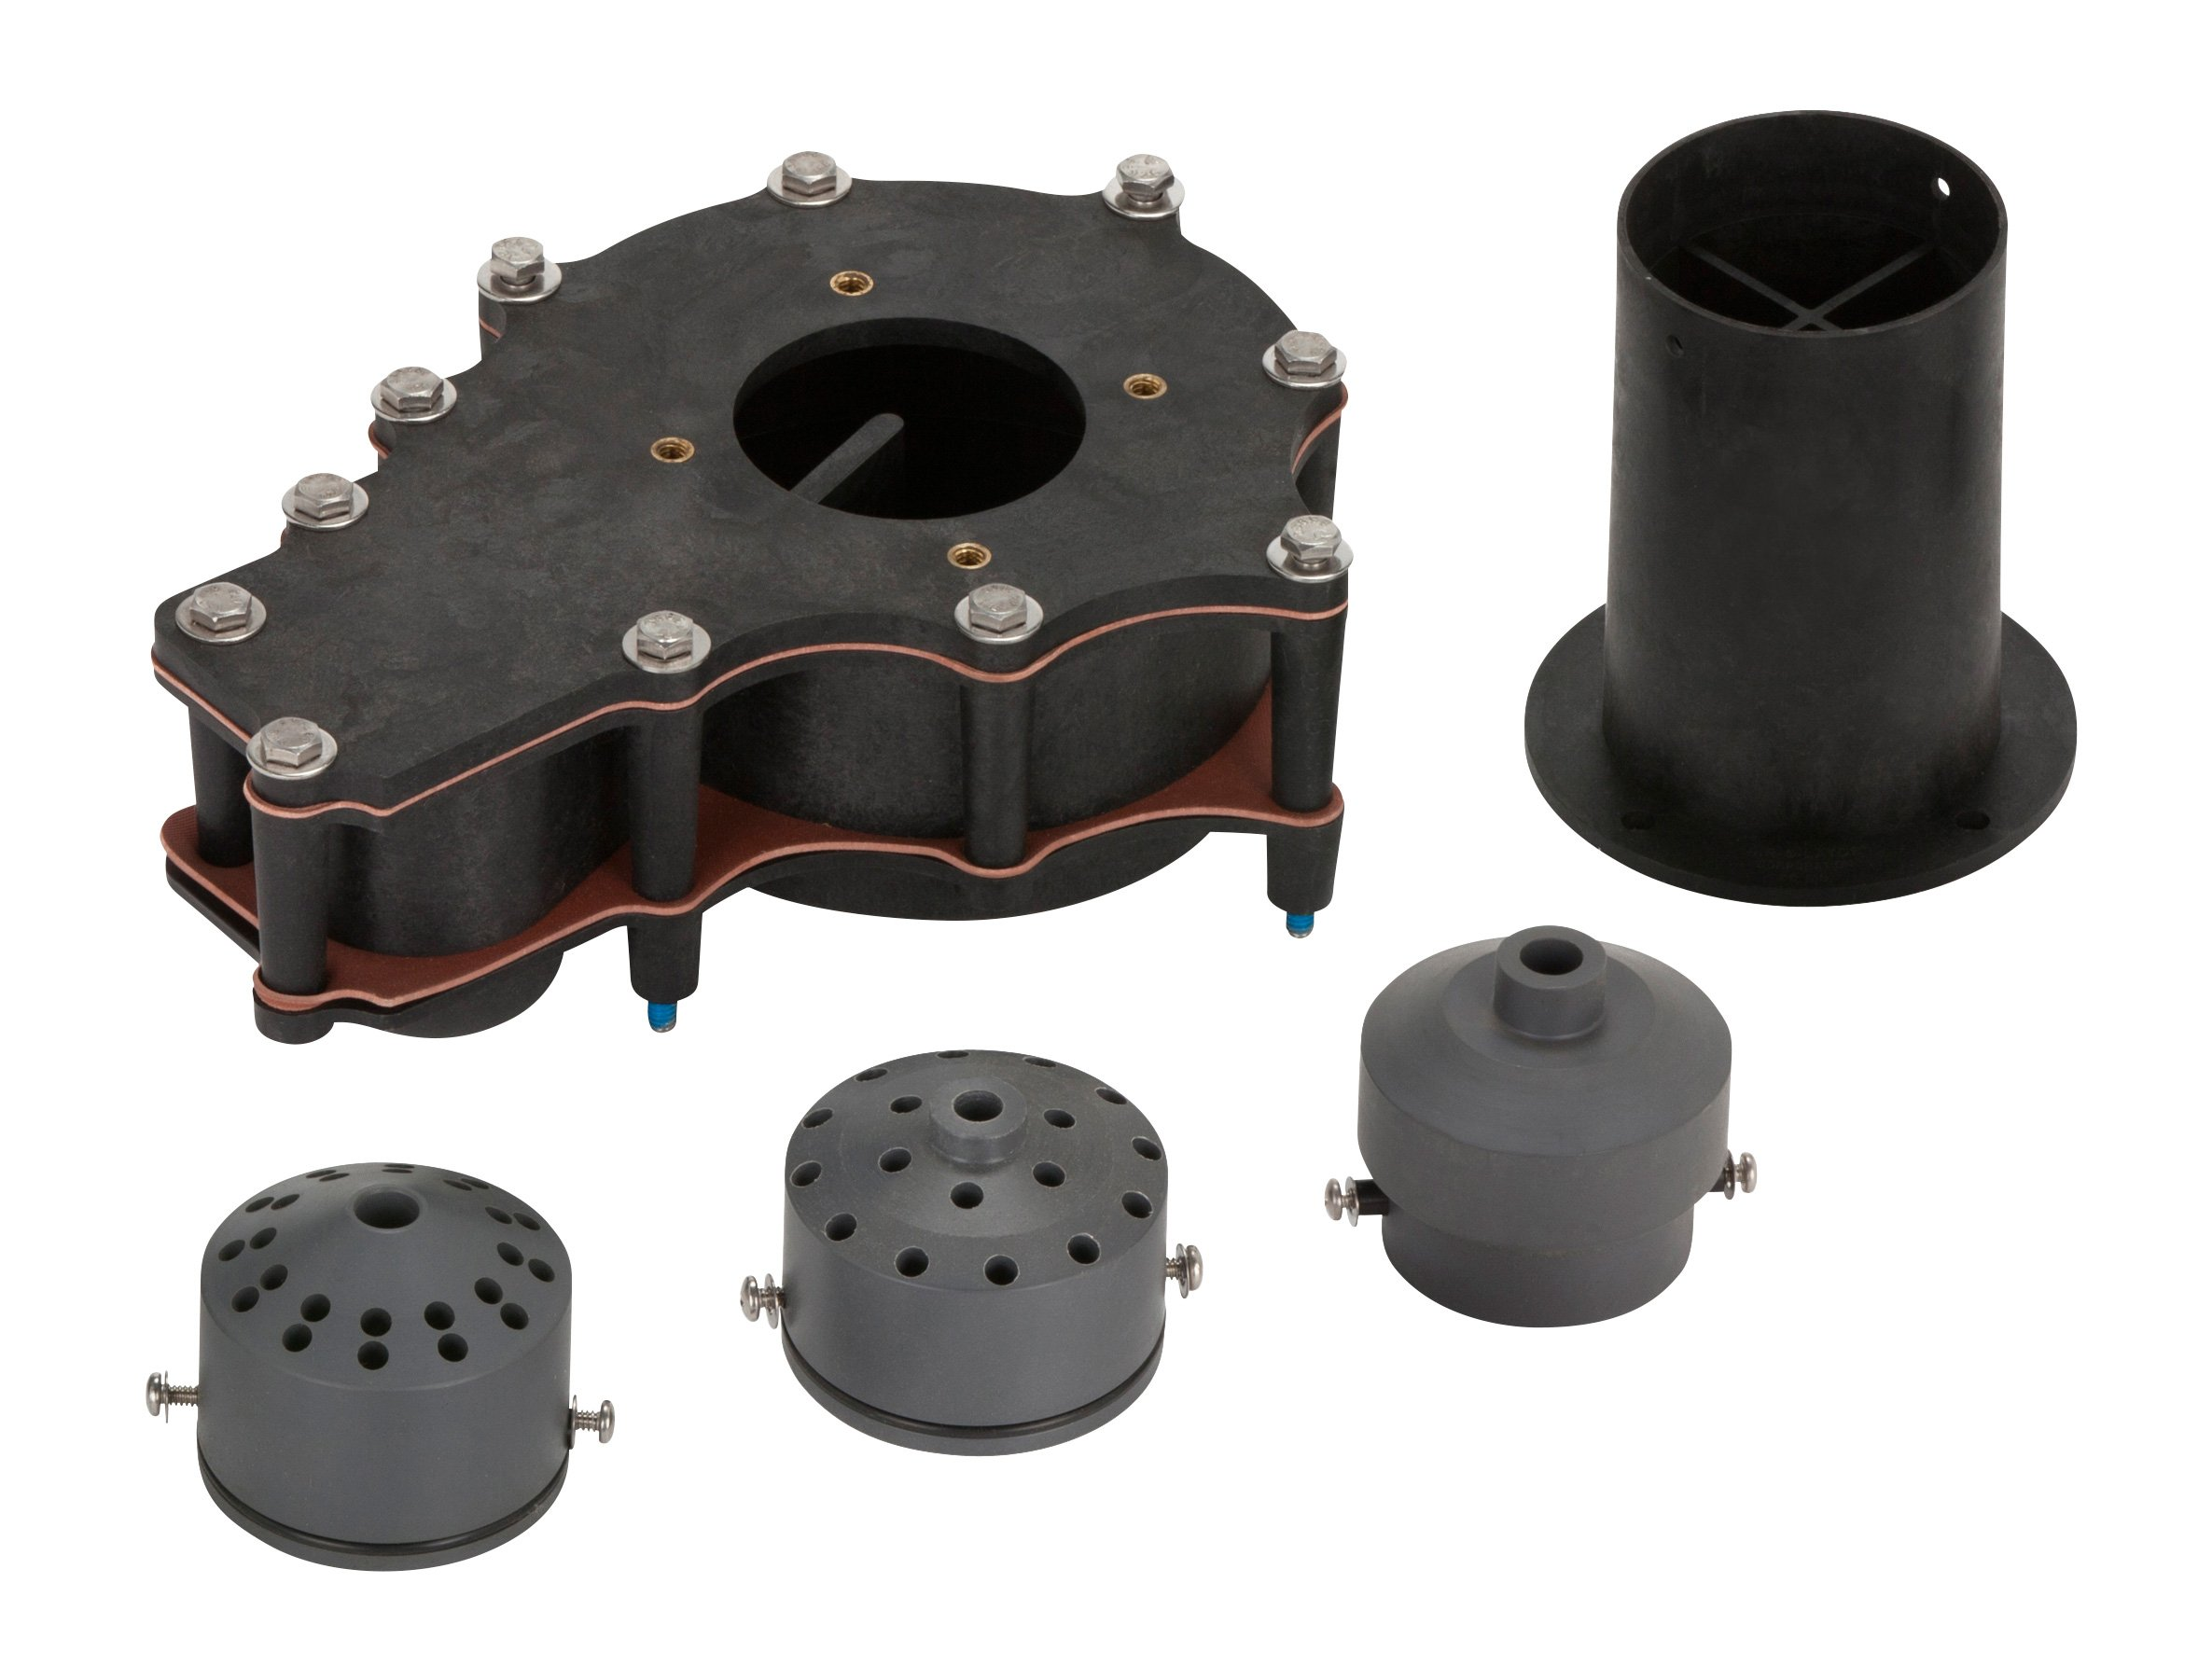 Little Giant FPH-05-K01 Floating Fountains with Three Nozzles Pond Aerator Conversion Kit